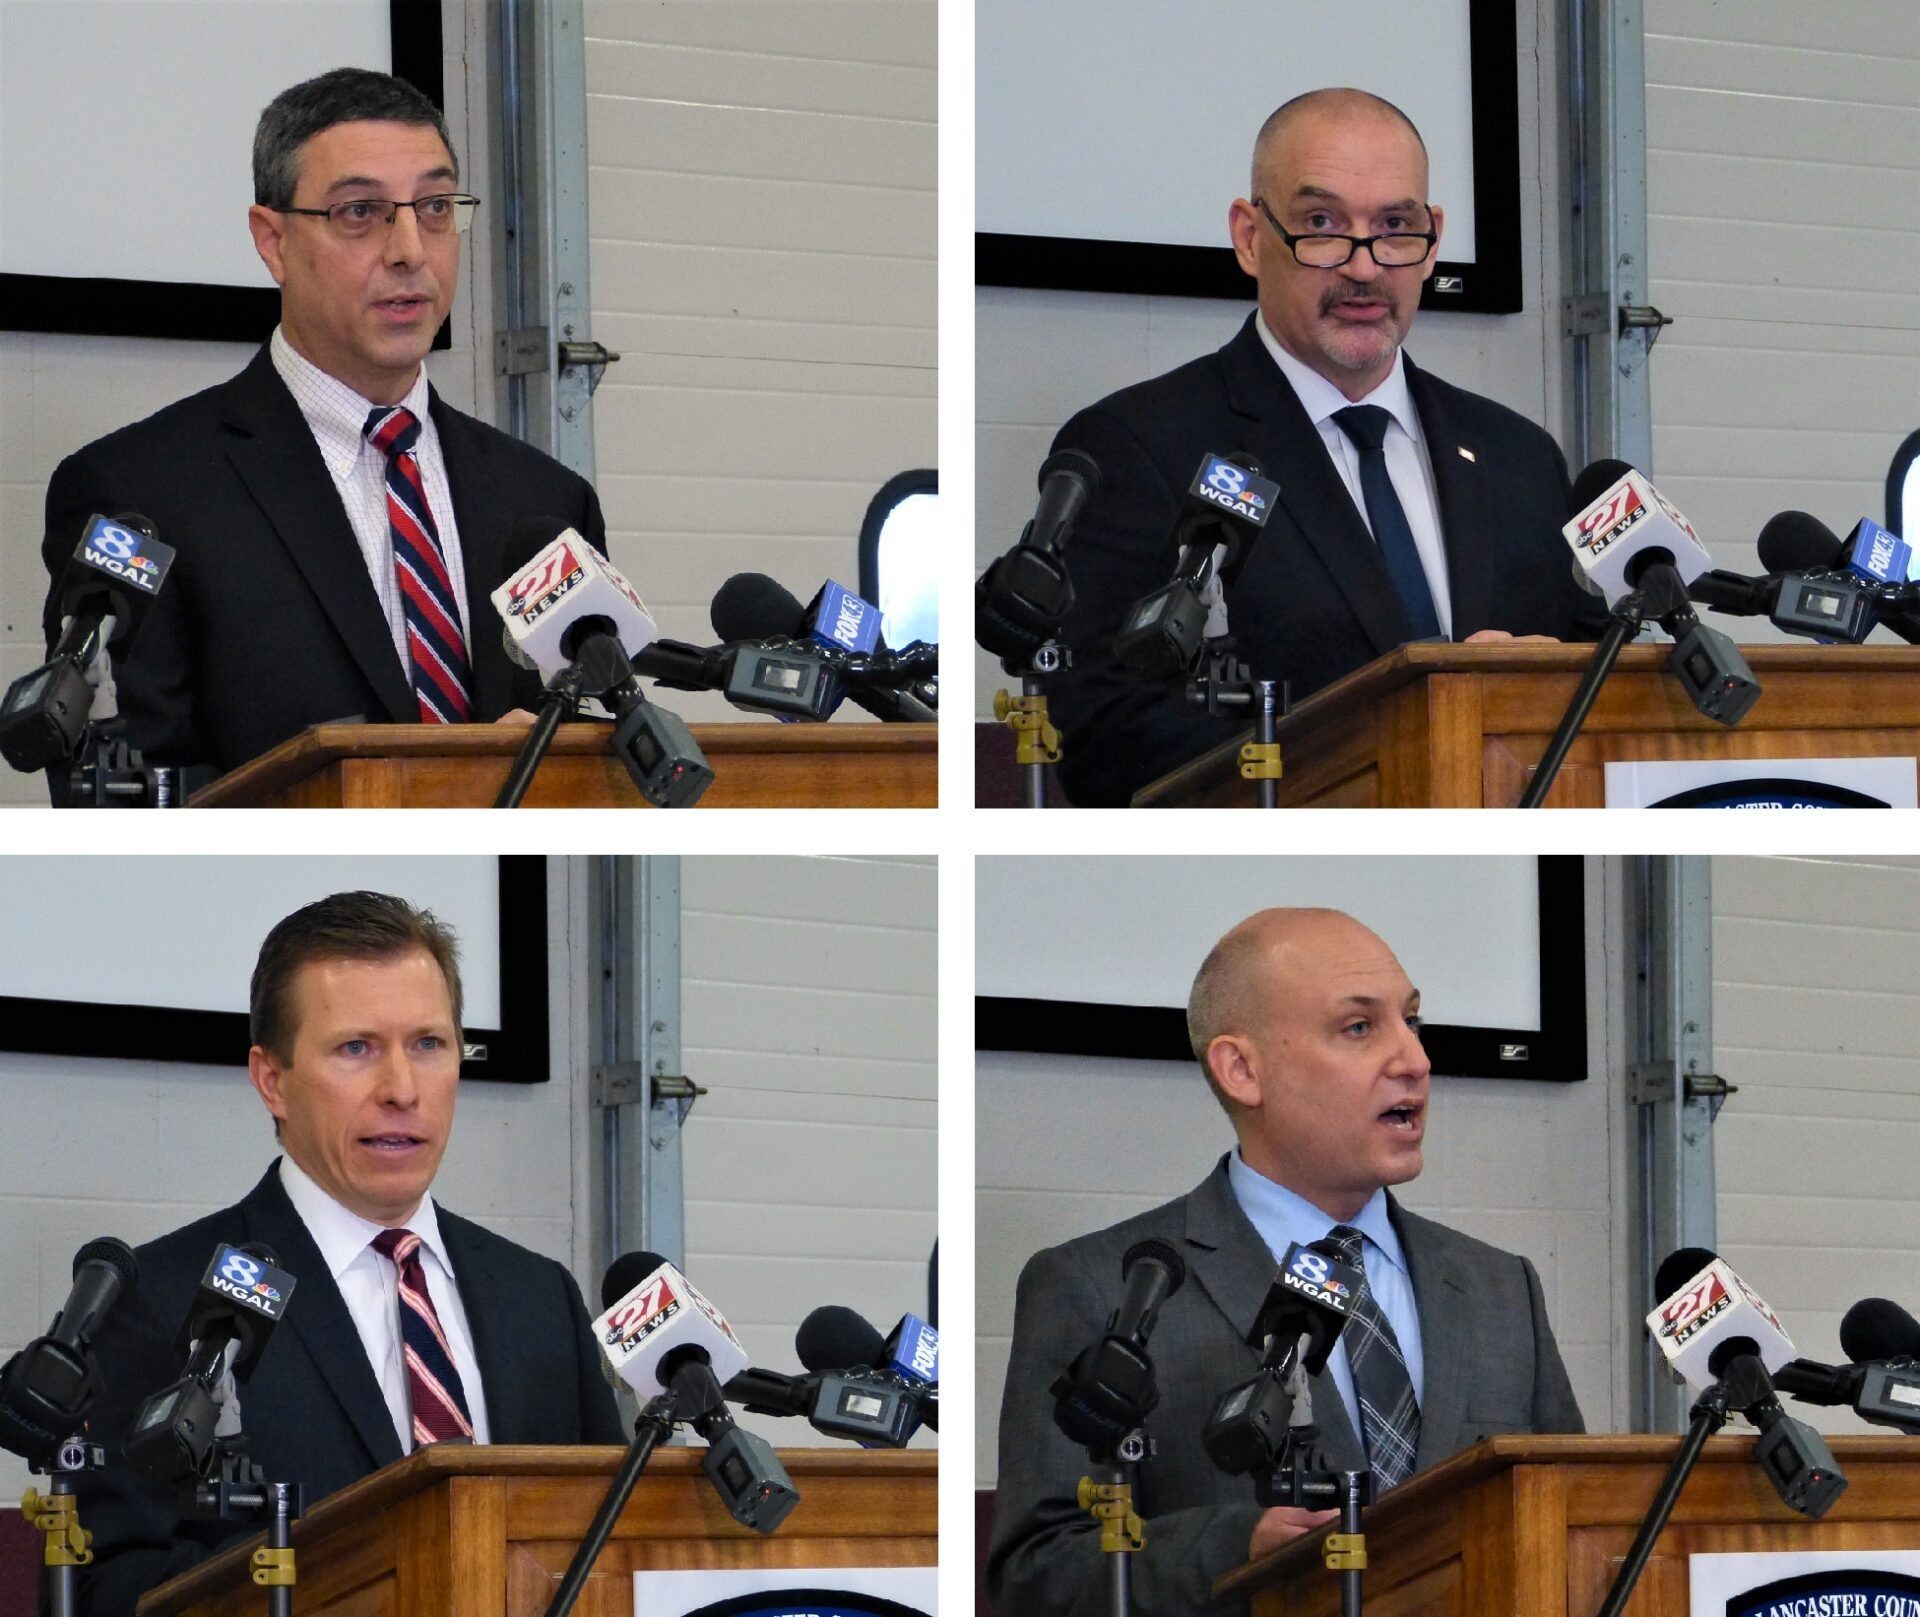 Lancaster County officials speak at a media briefing on Covid-19 at the county Public Safety Training Center on Thursday, Jan. 28, 2021. Top row: County Commissioners Ray D'Agostino, left, and Craig Lehman. Bottom row: County Commissioner Josh Parsons, left, and Dr. Michael Ripchinski of Penn Medicine Lancaster General Health. (Photos: Tim Stuhldreher)